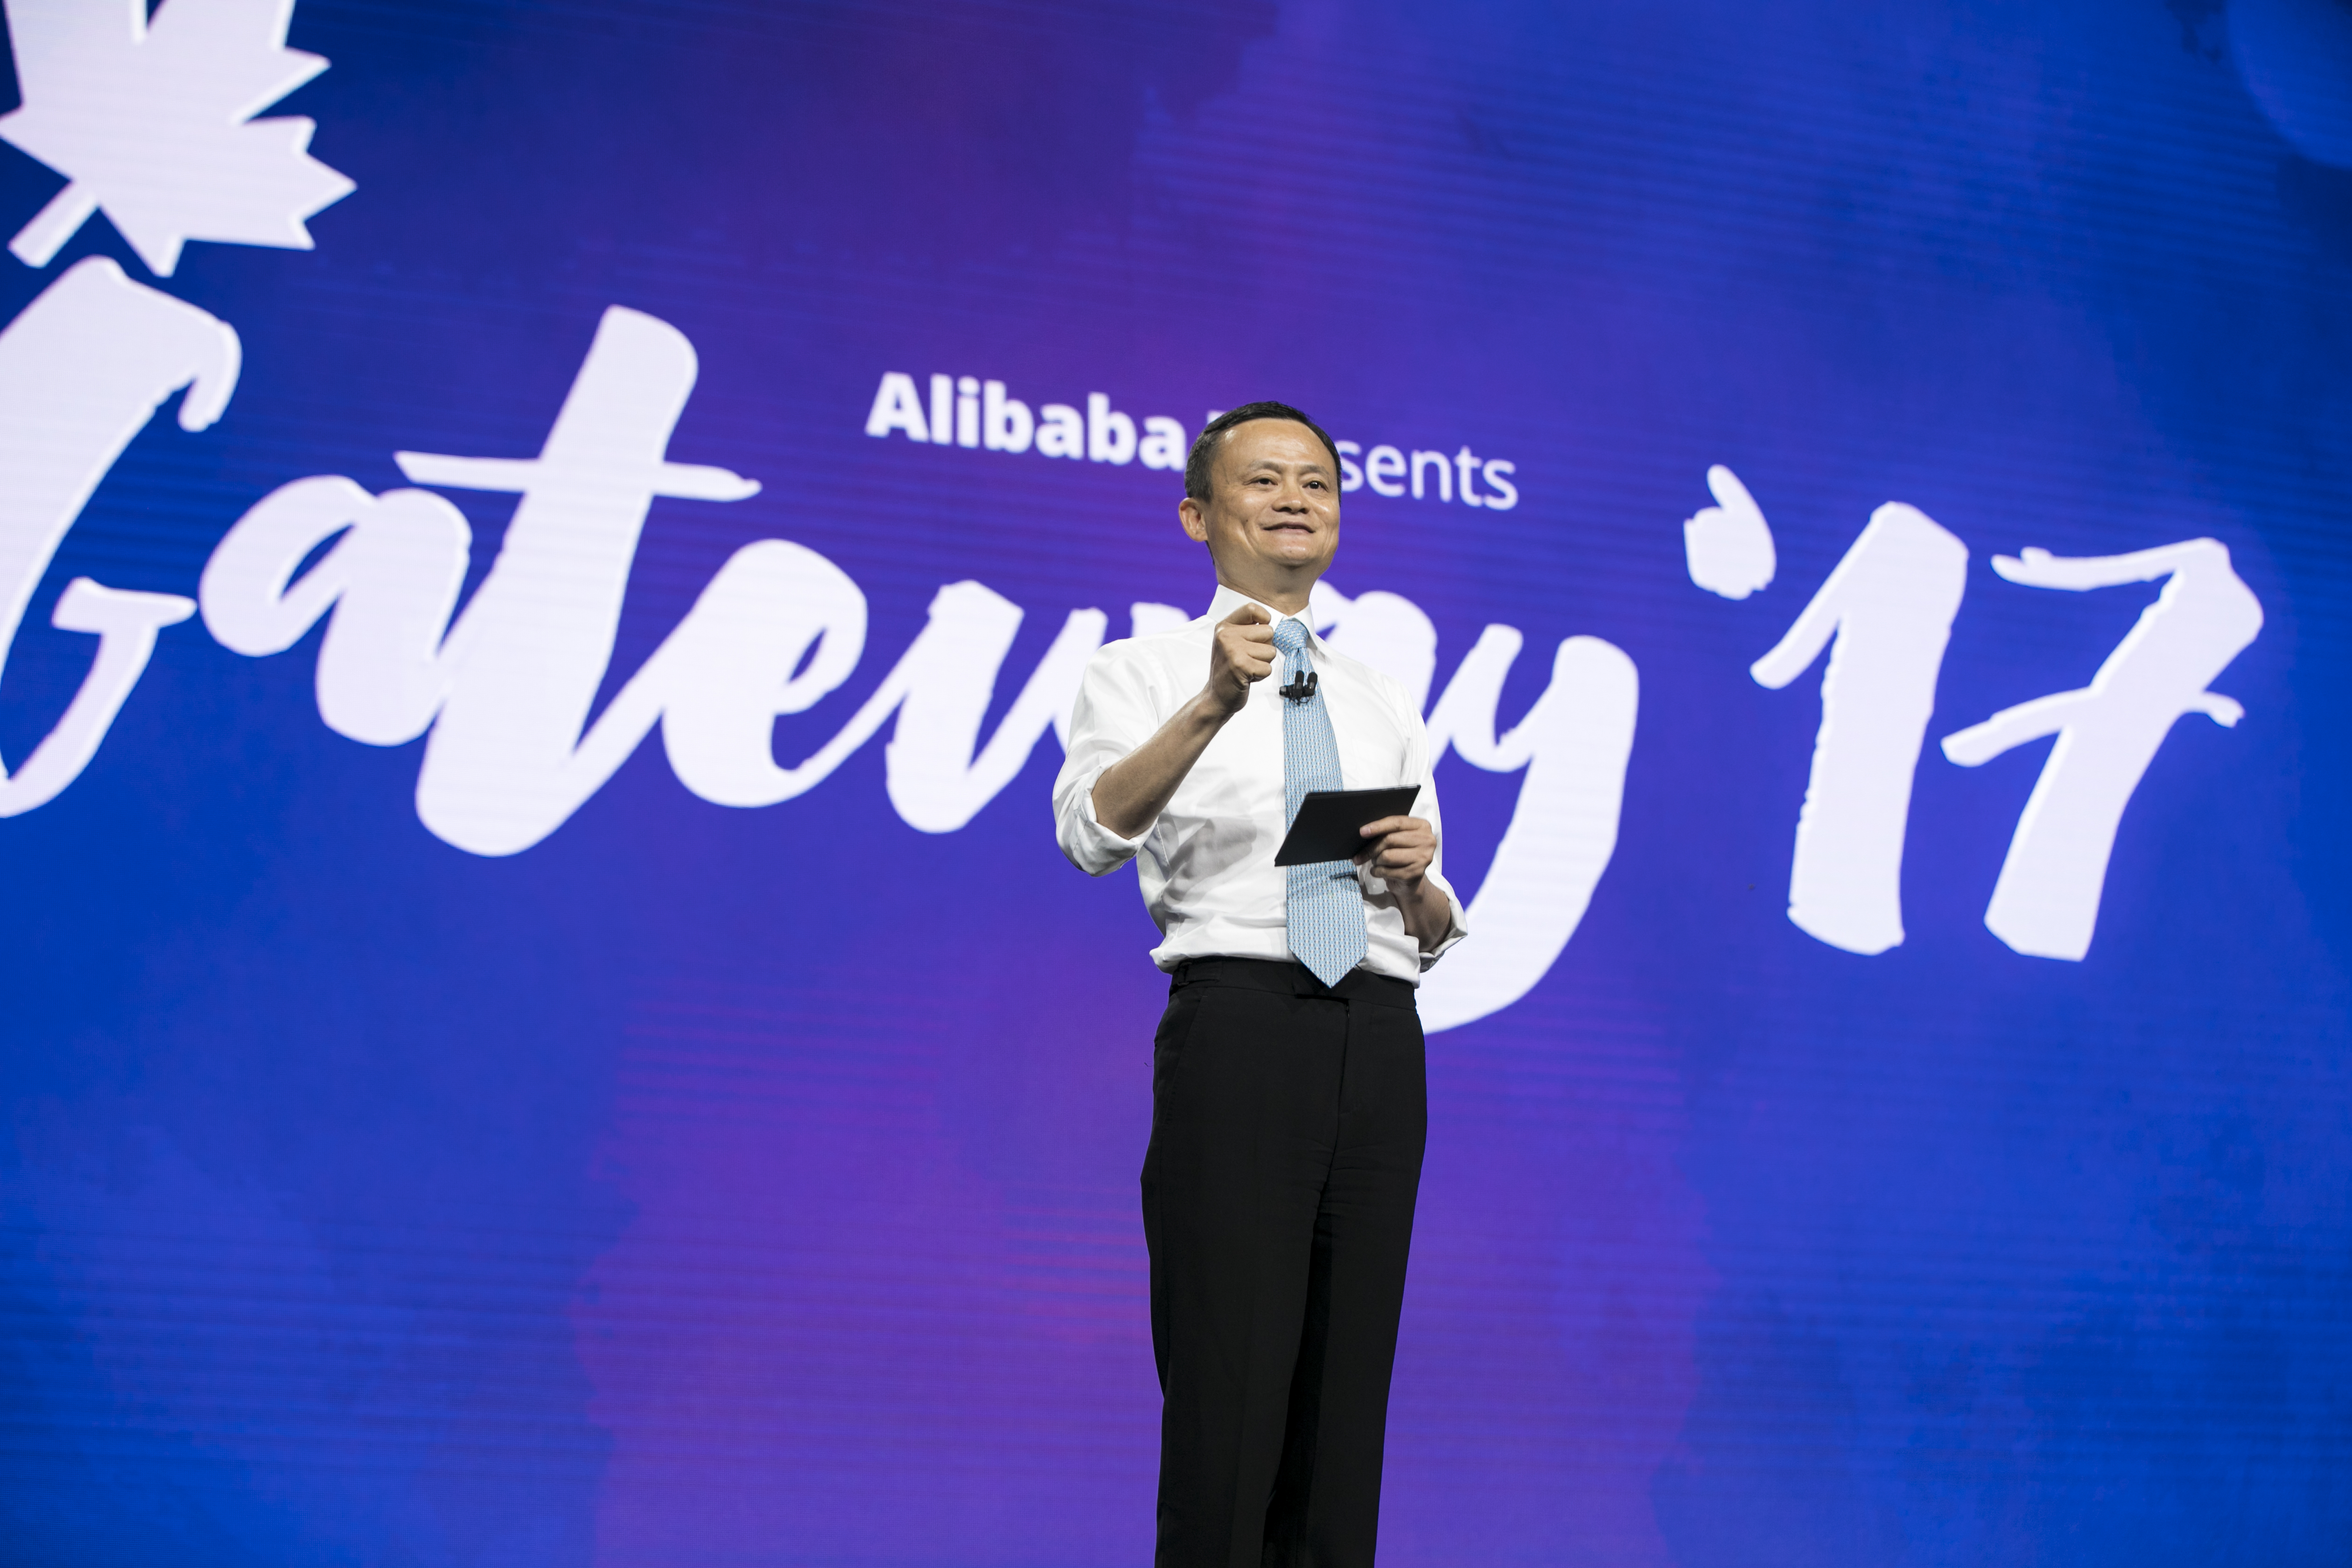 Live Updates From Alibaba S Gateway 17 In Toronto Alizila Com Alipay launched in canada last year, but monday's announcement will see the service expand alibaba was launched in 1999 and alipay came a few years later in 2004. live updates from alibaba s gateway 17 in toronto alizila com